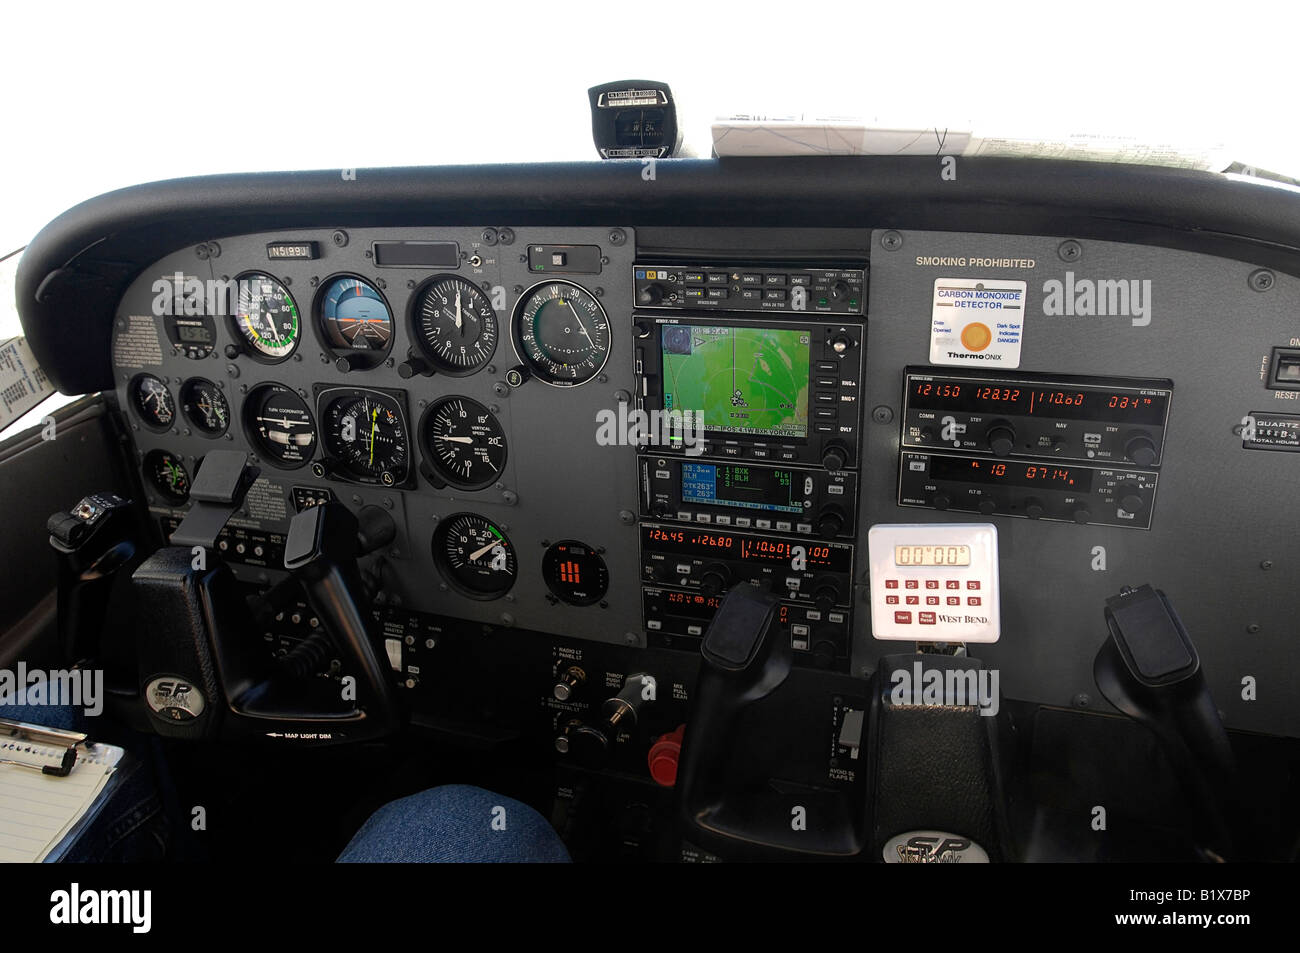 in-flight photograph of the instrument panel of a Cessna 172